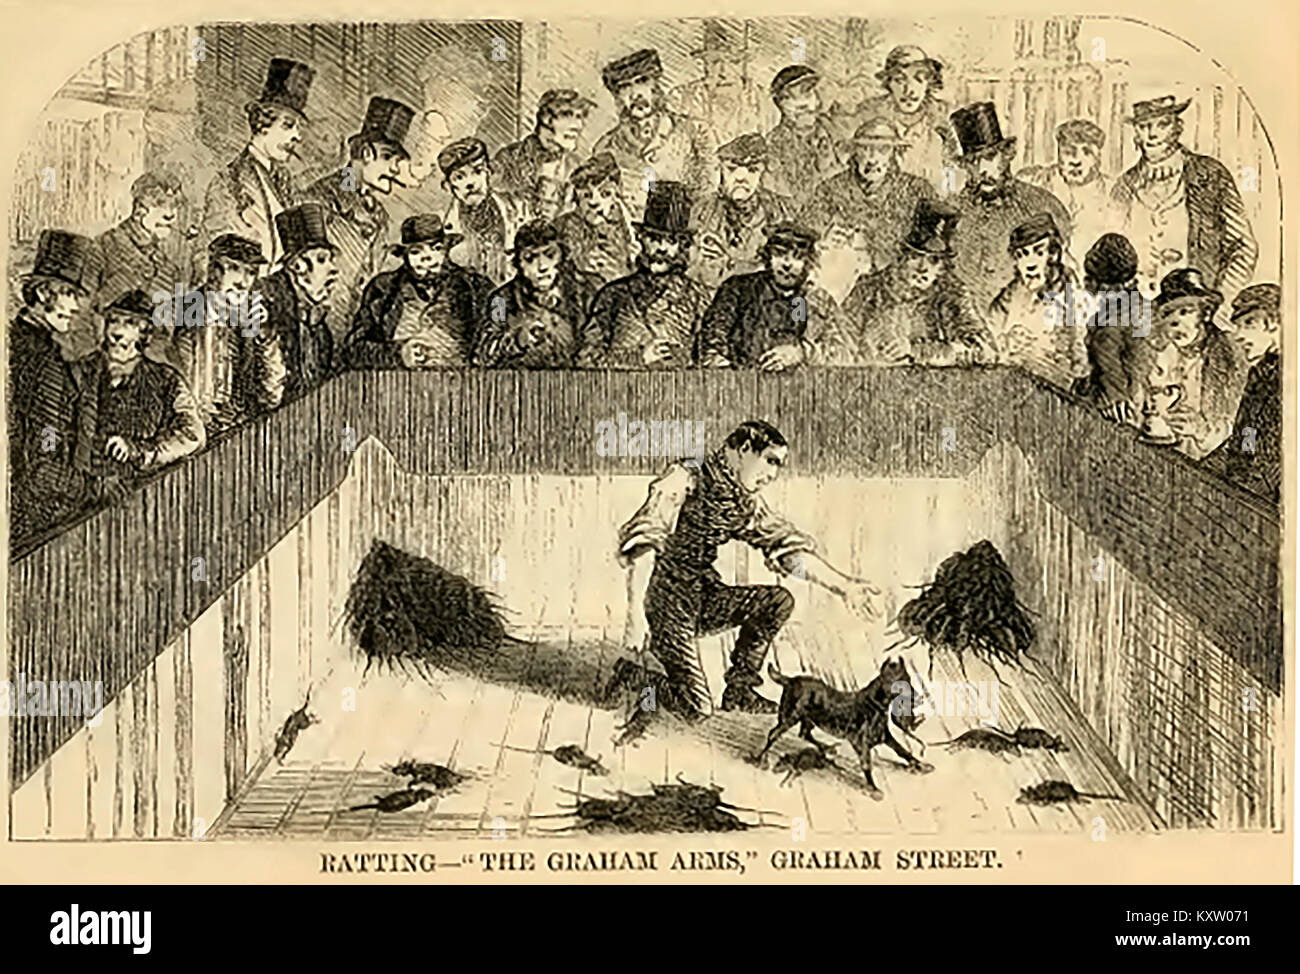 Blood sports in Victorian England - The  Ratting pit at the Grahams Arms, Graham Street,  London - Stock Image